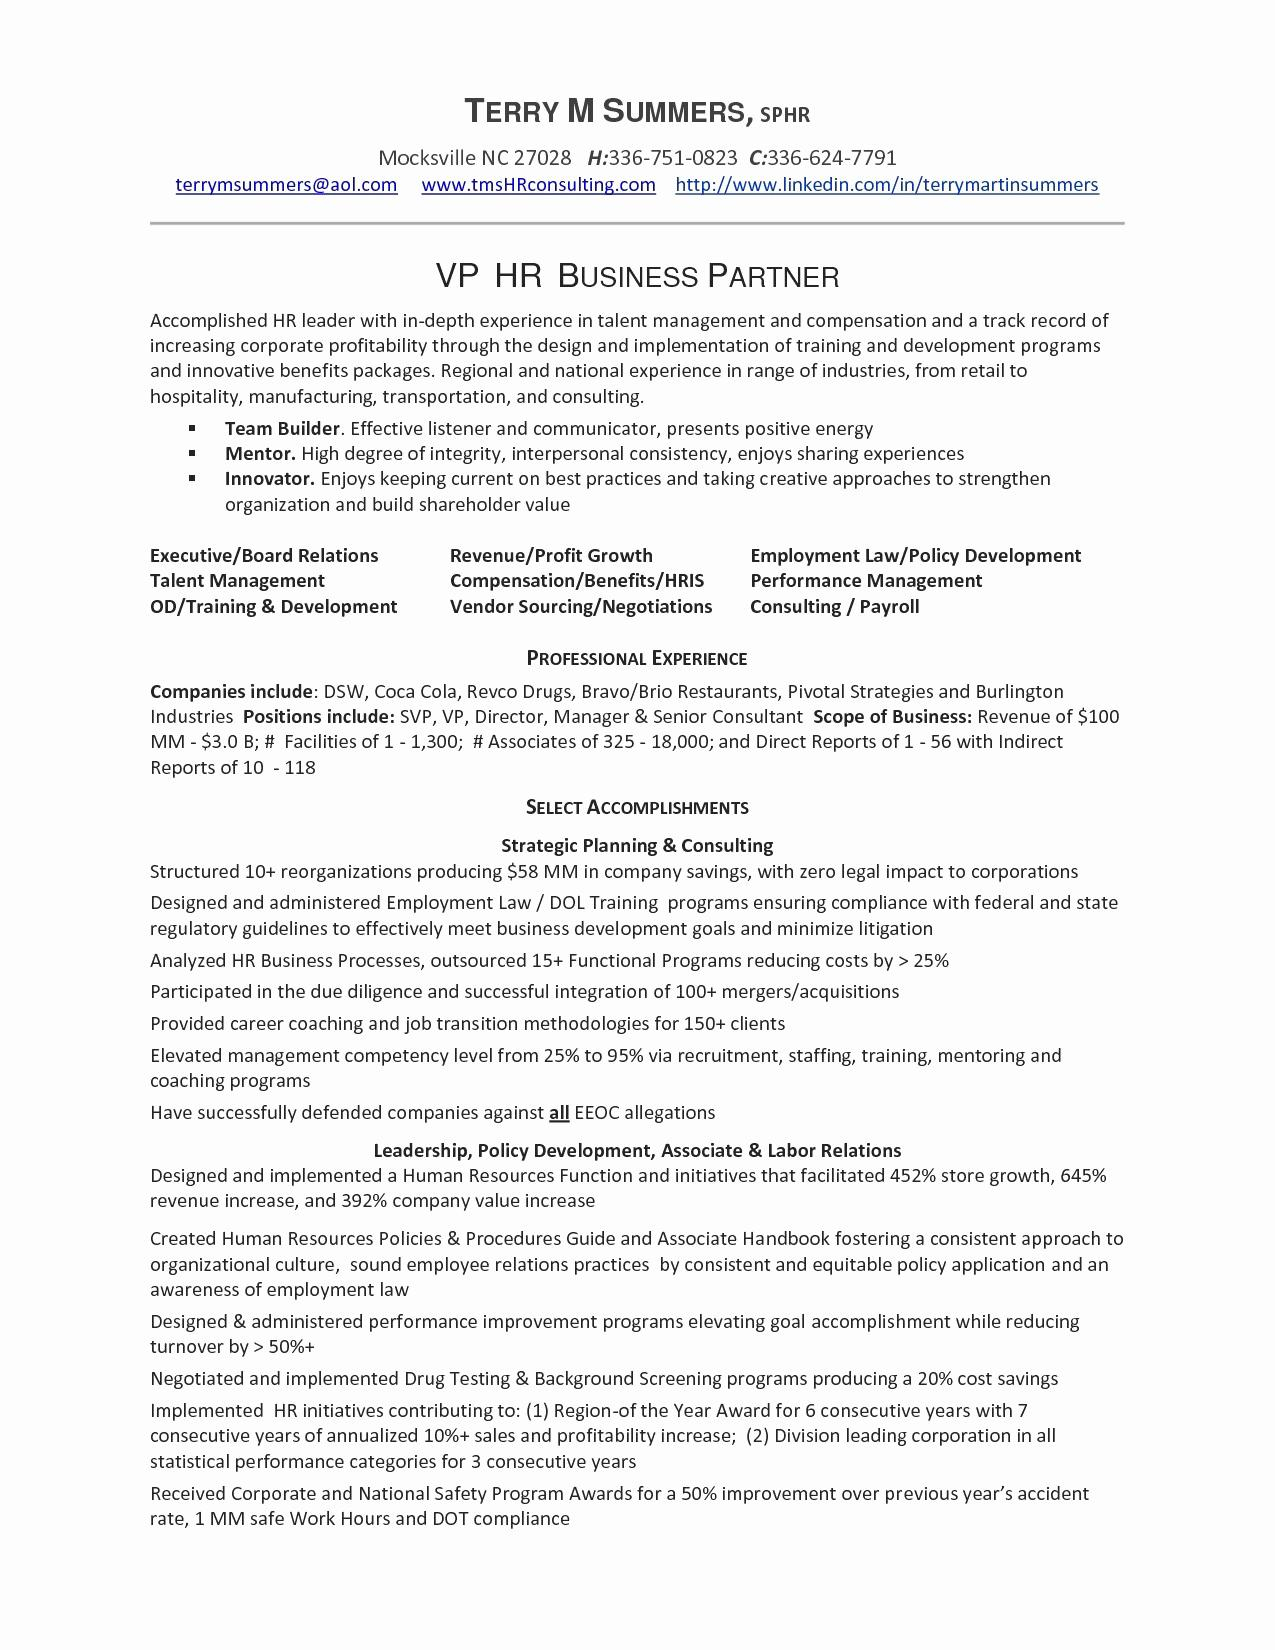 Operation Manager Resume Template - Operations Manager Resume Sample New Hr Manager Resume Beautiful